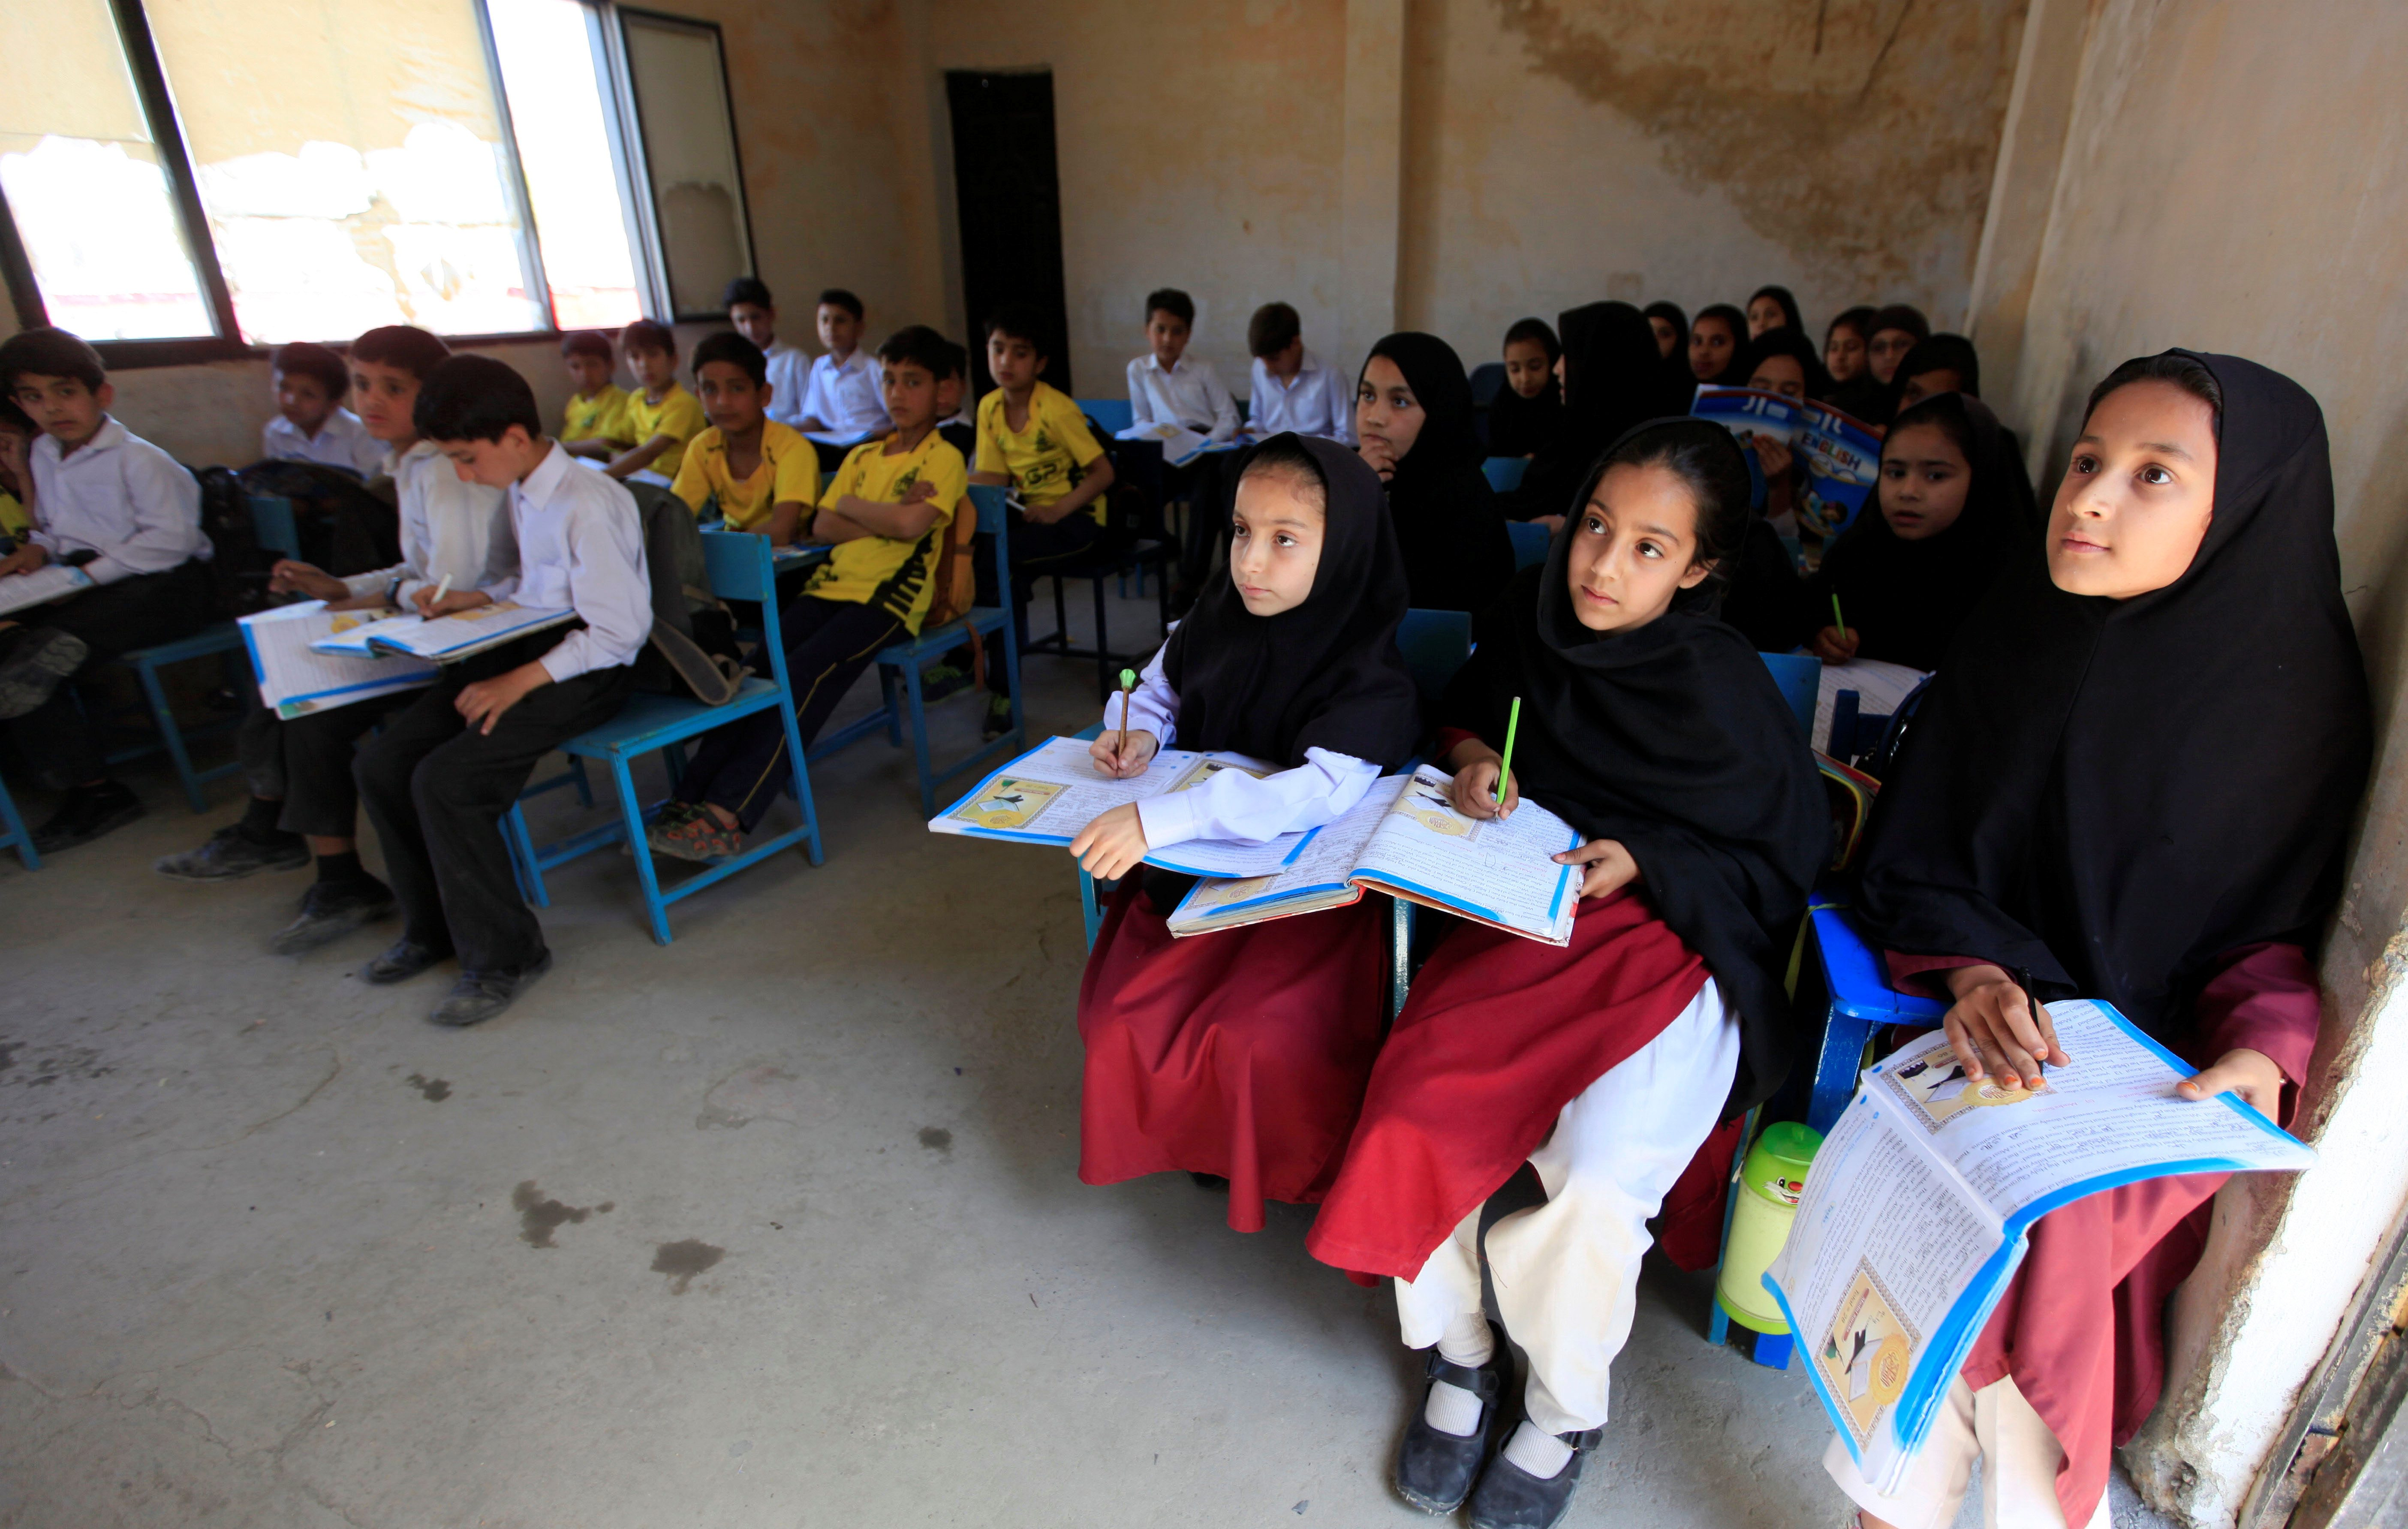 Children attend a class at Khushal school that Nobel Peace Prize laureate Malala Yousafzai used to attend, in her hometown of Mingora in Swat Valley, Pakistan March 30, 2018. REUTERS/Faisal Mahmood - RC16E4045B40